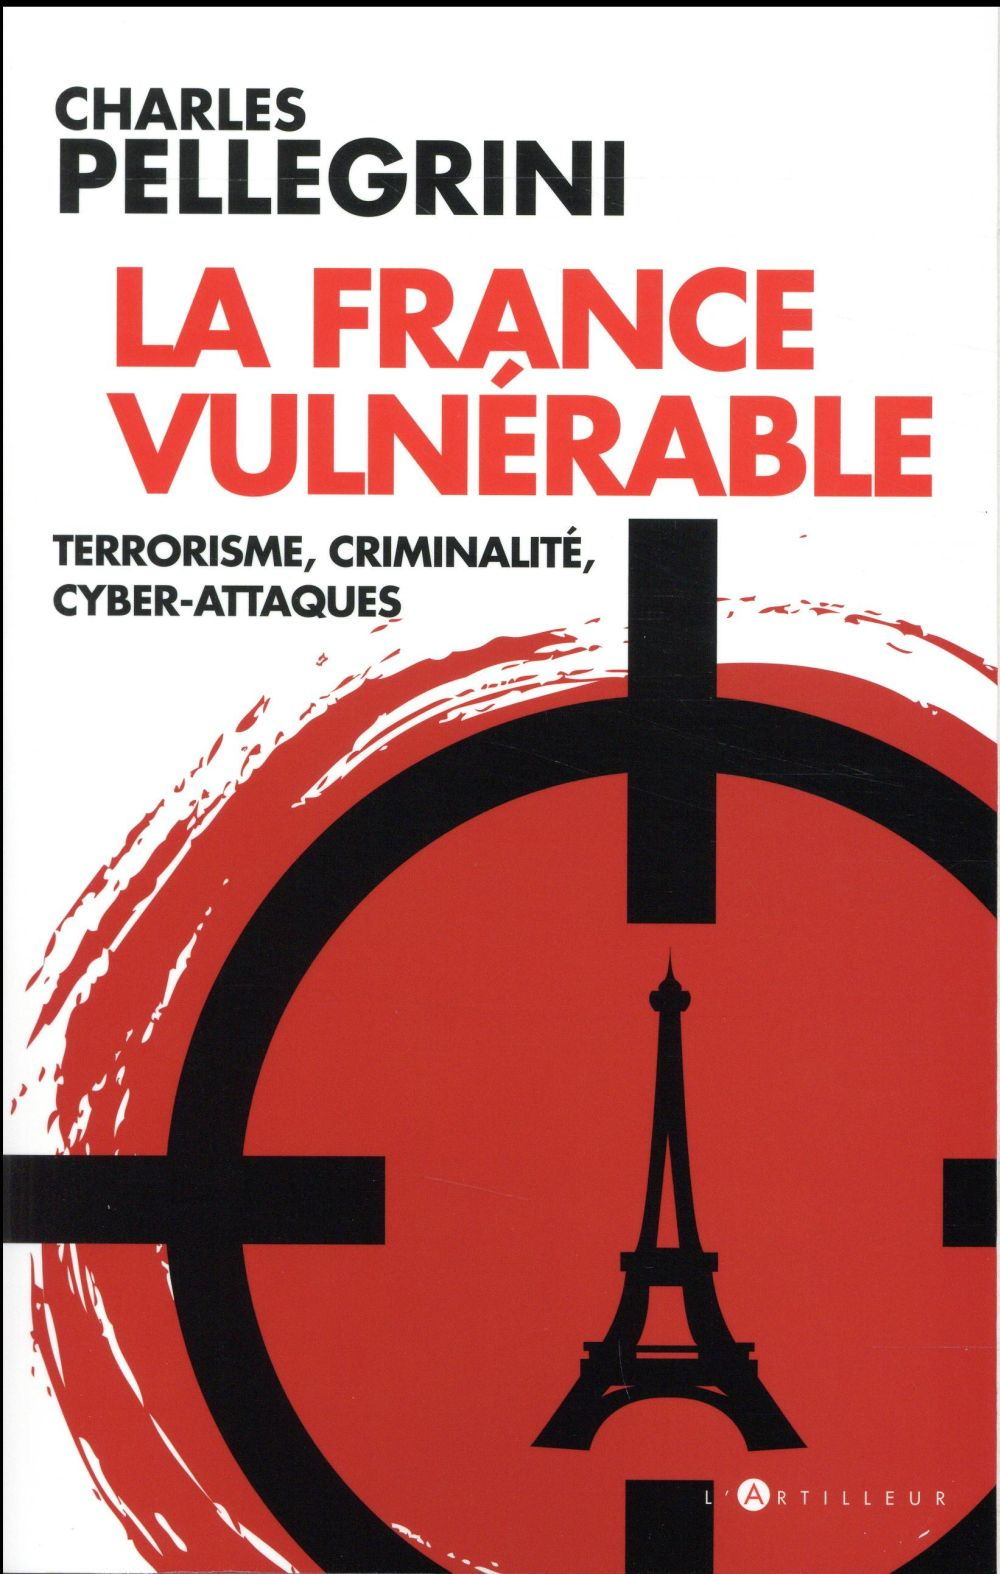 LA FRANCE VULNERABLE